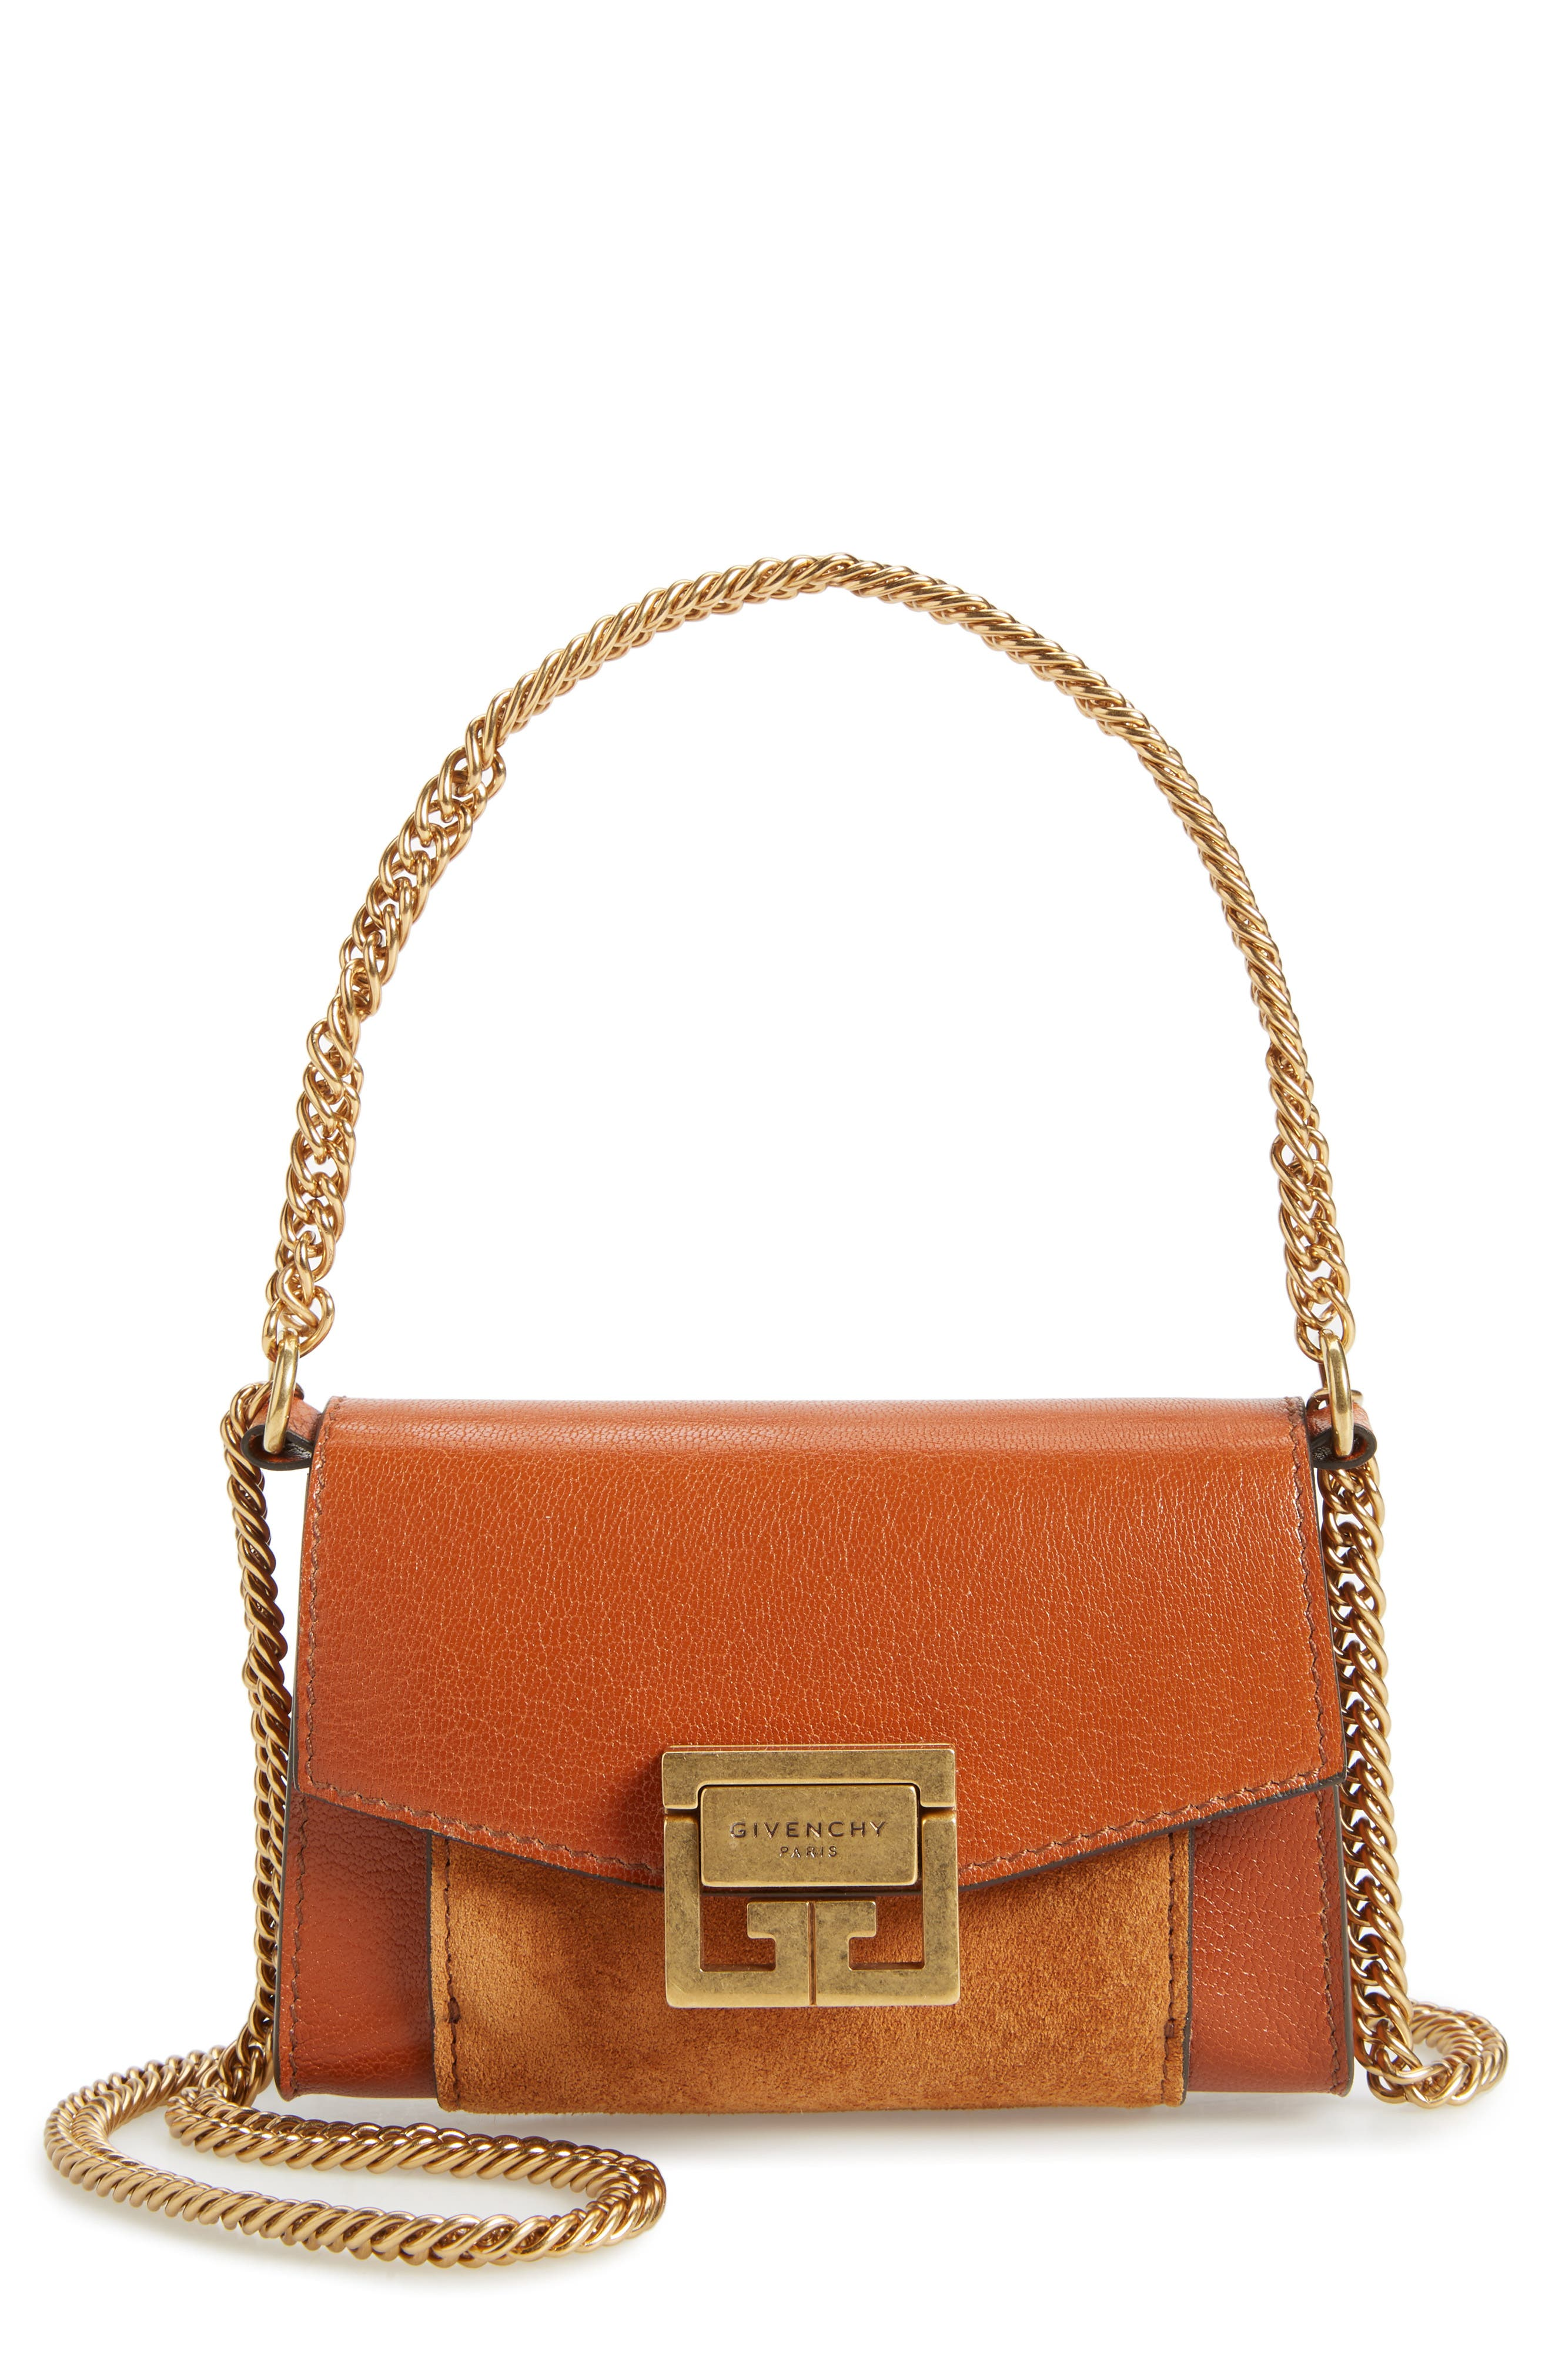 Givency Nano GV3 Leather & Suede Crossbody Bag,                             Main thumbnail 1, color,                             Chestnut